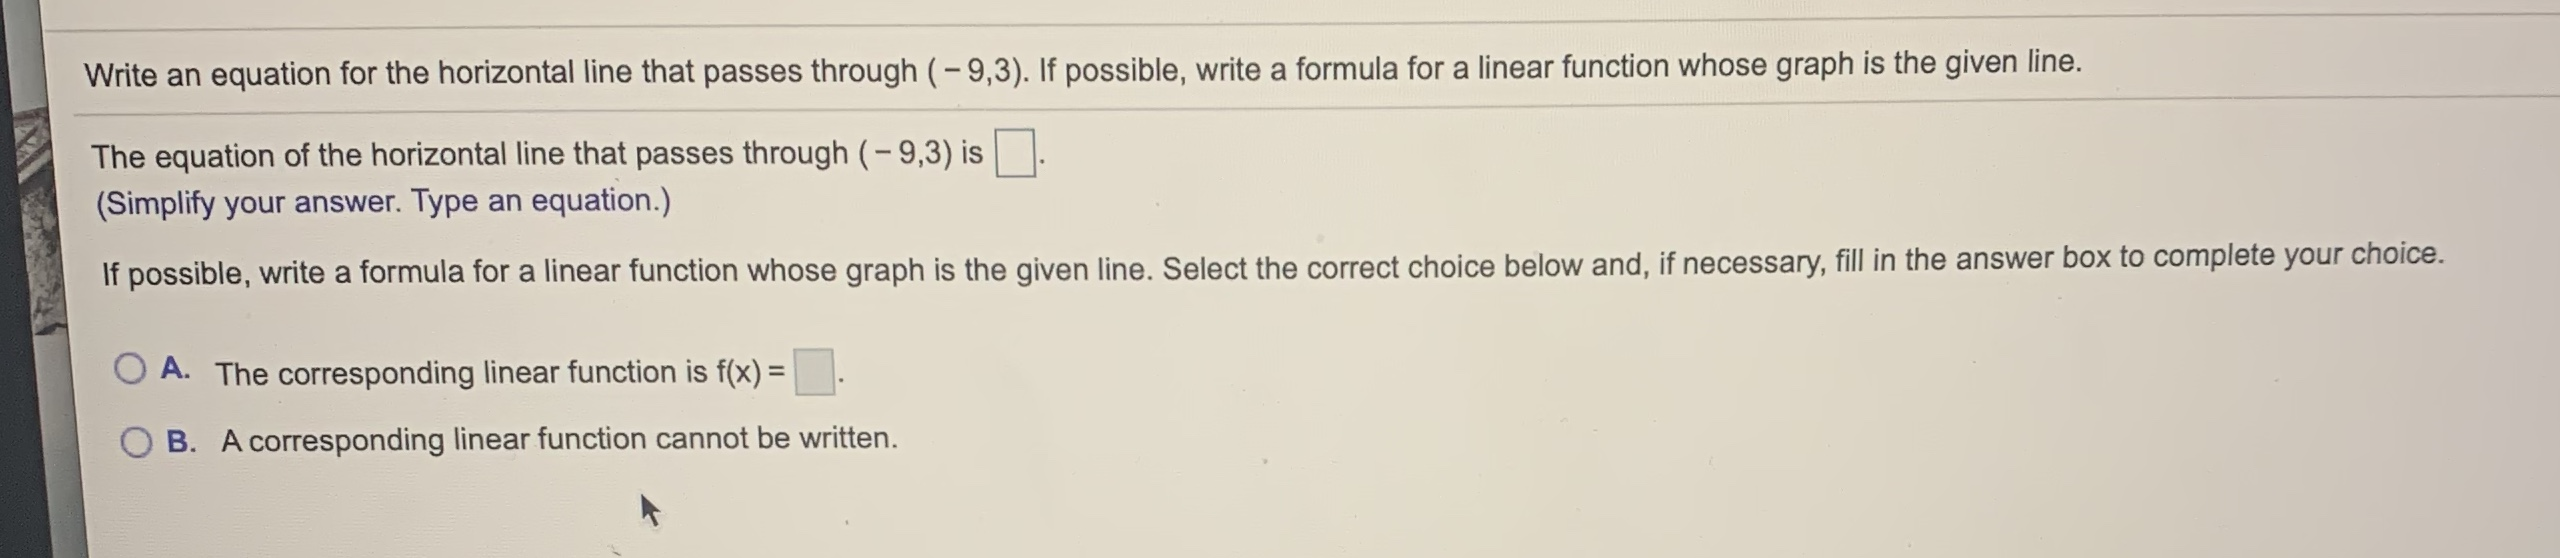 Write an equation for the horizontal line that passes through (-9,3). If possible, write a formula for a linear function whose graph is the given line. The equation of the horizontal line that passes through (- 9,3) is (Simplify your answer. Type an equation.) If possible, write a formula for a linear function whose graph is the given line. Select the correct choice below and, if necessary, fill in the answer box to complete your choice. A. The corresponding linear function is f(x) = B. A corresponding linear function cannot be written.